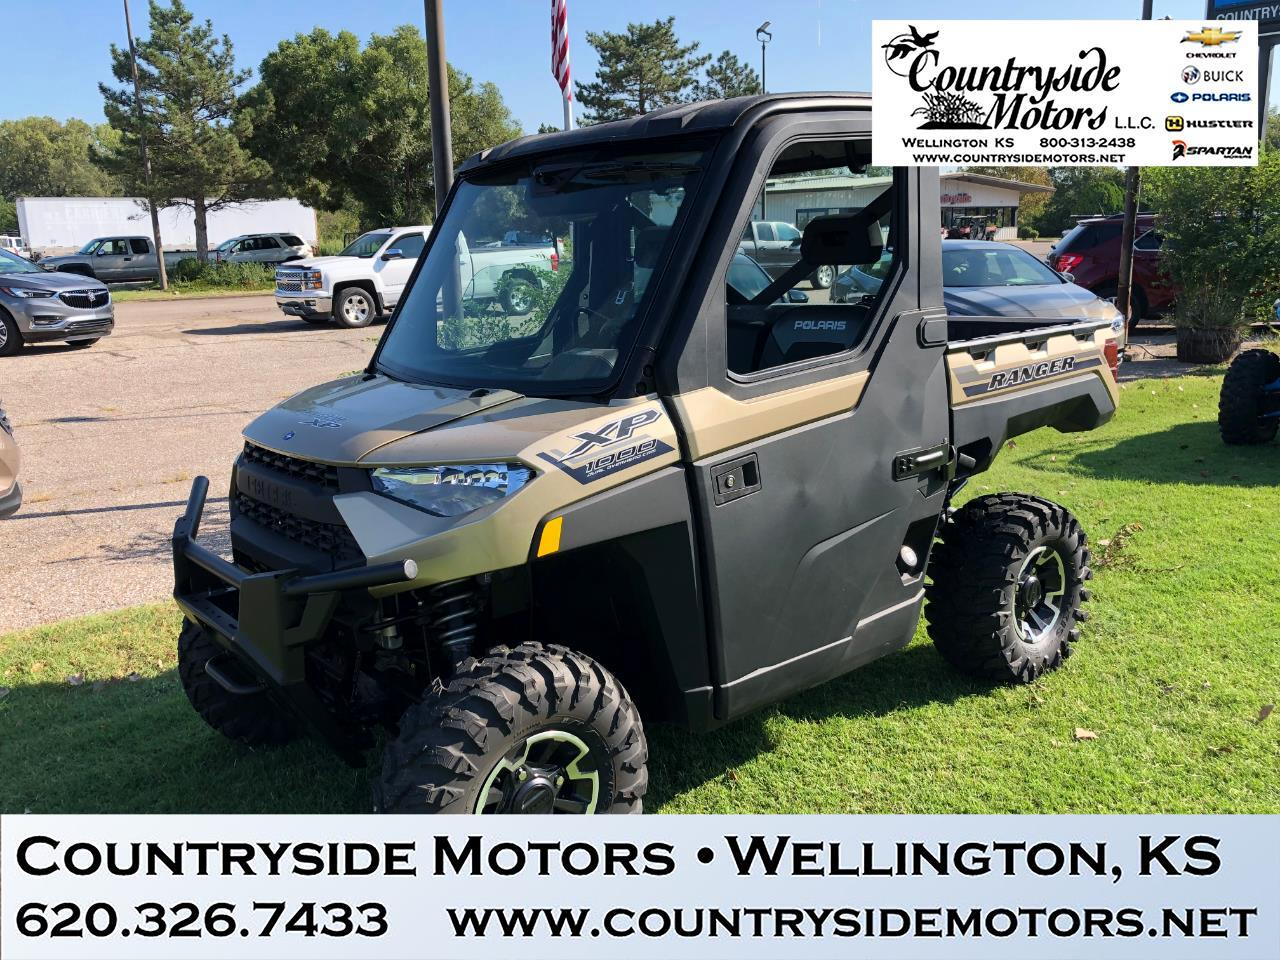 2020 Polaris Ranger XP 1000 EPS Northstar with Heat and AC